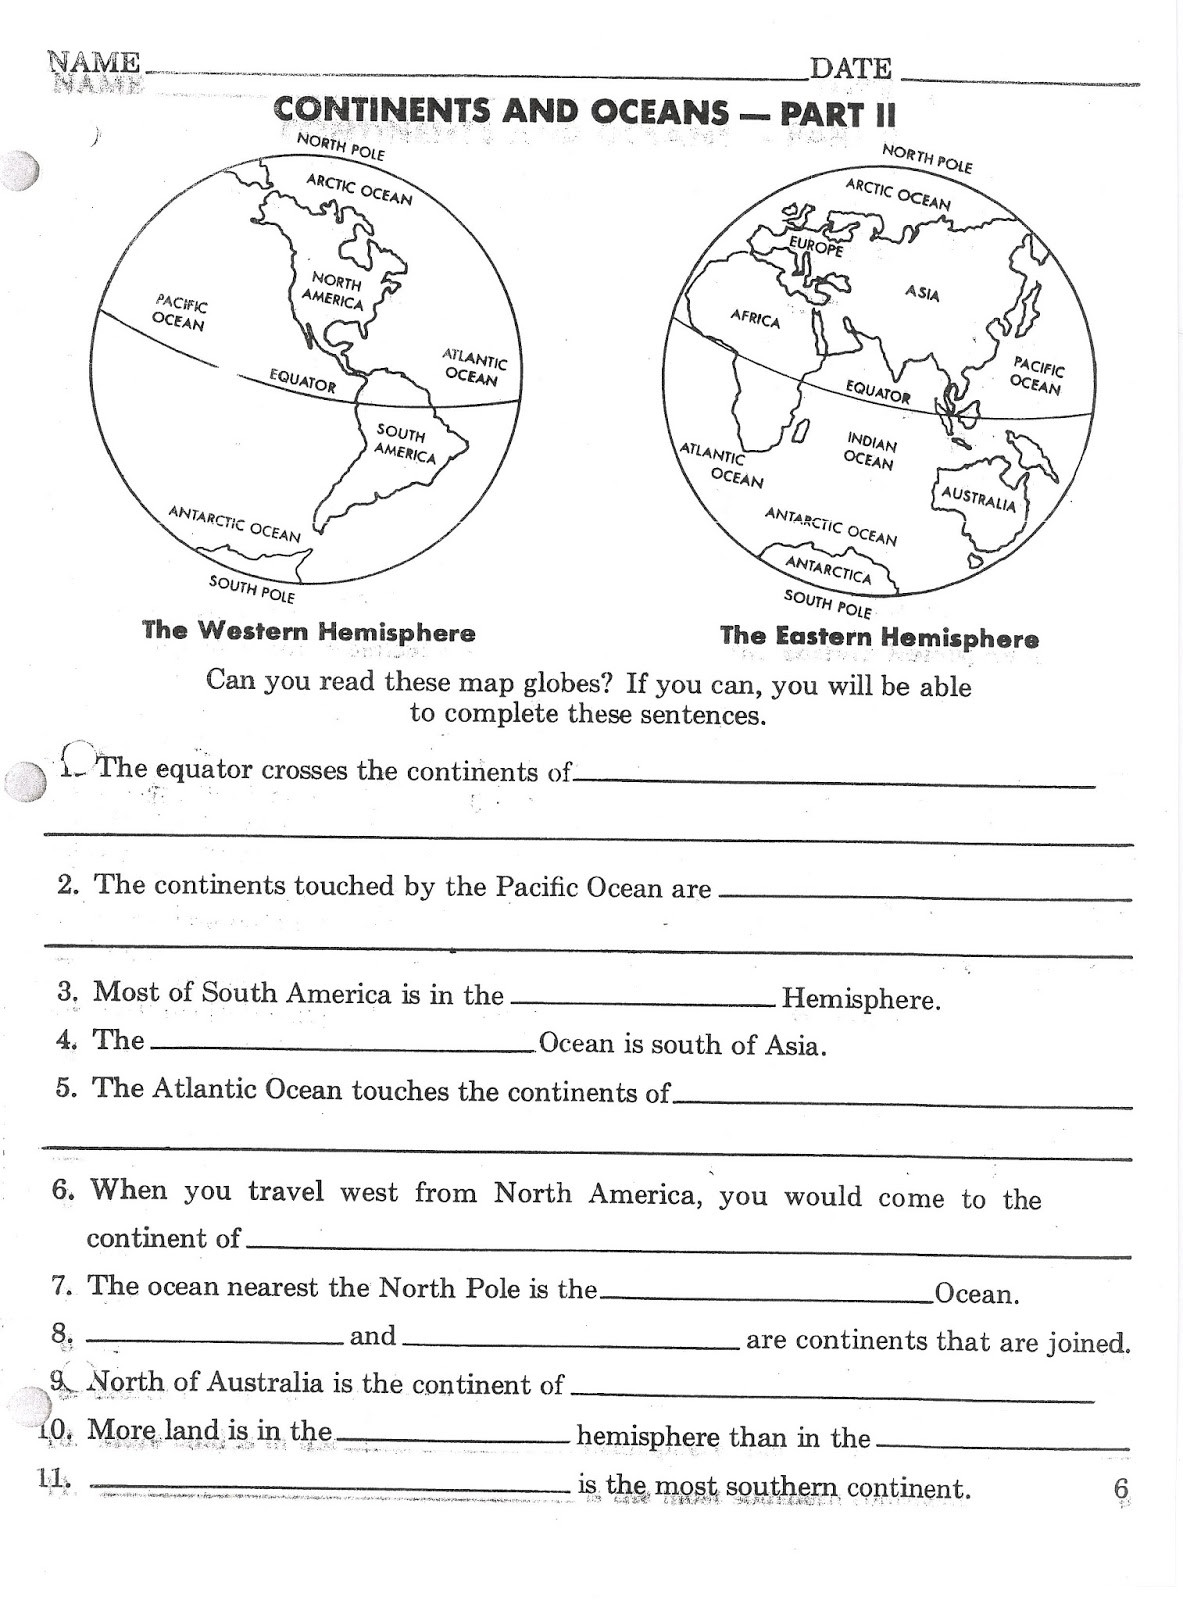 Continents and Oceans Worksheet Printable Super Teacher Worksheets Continents